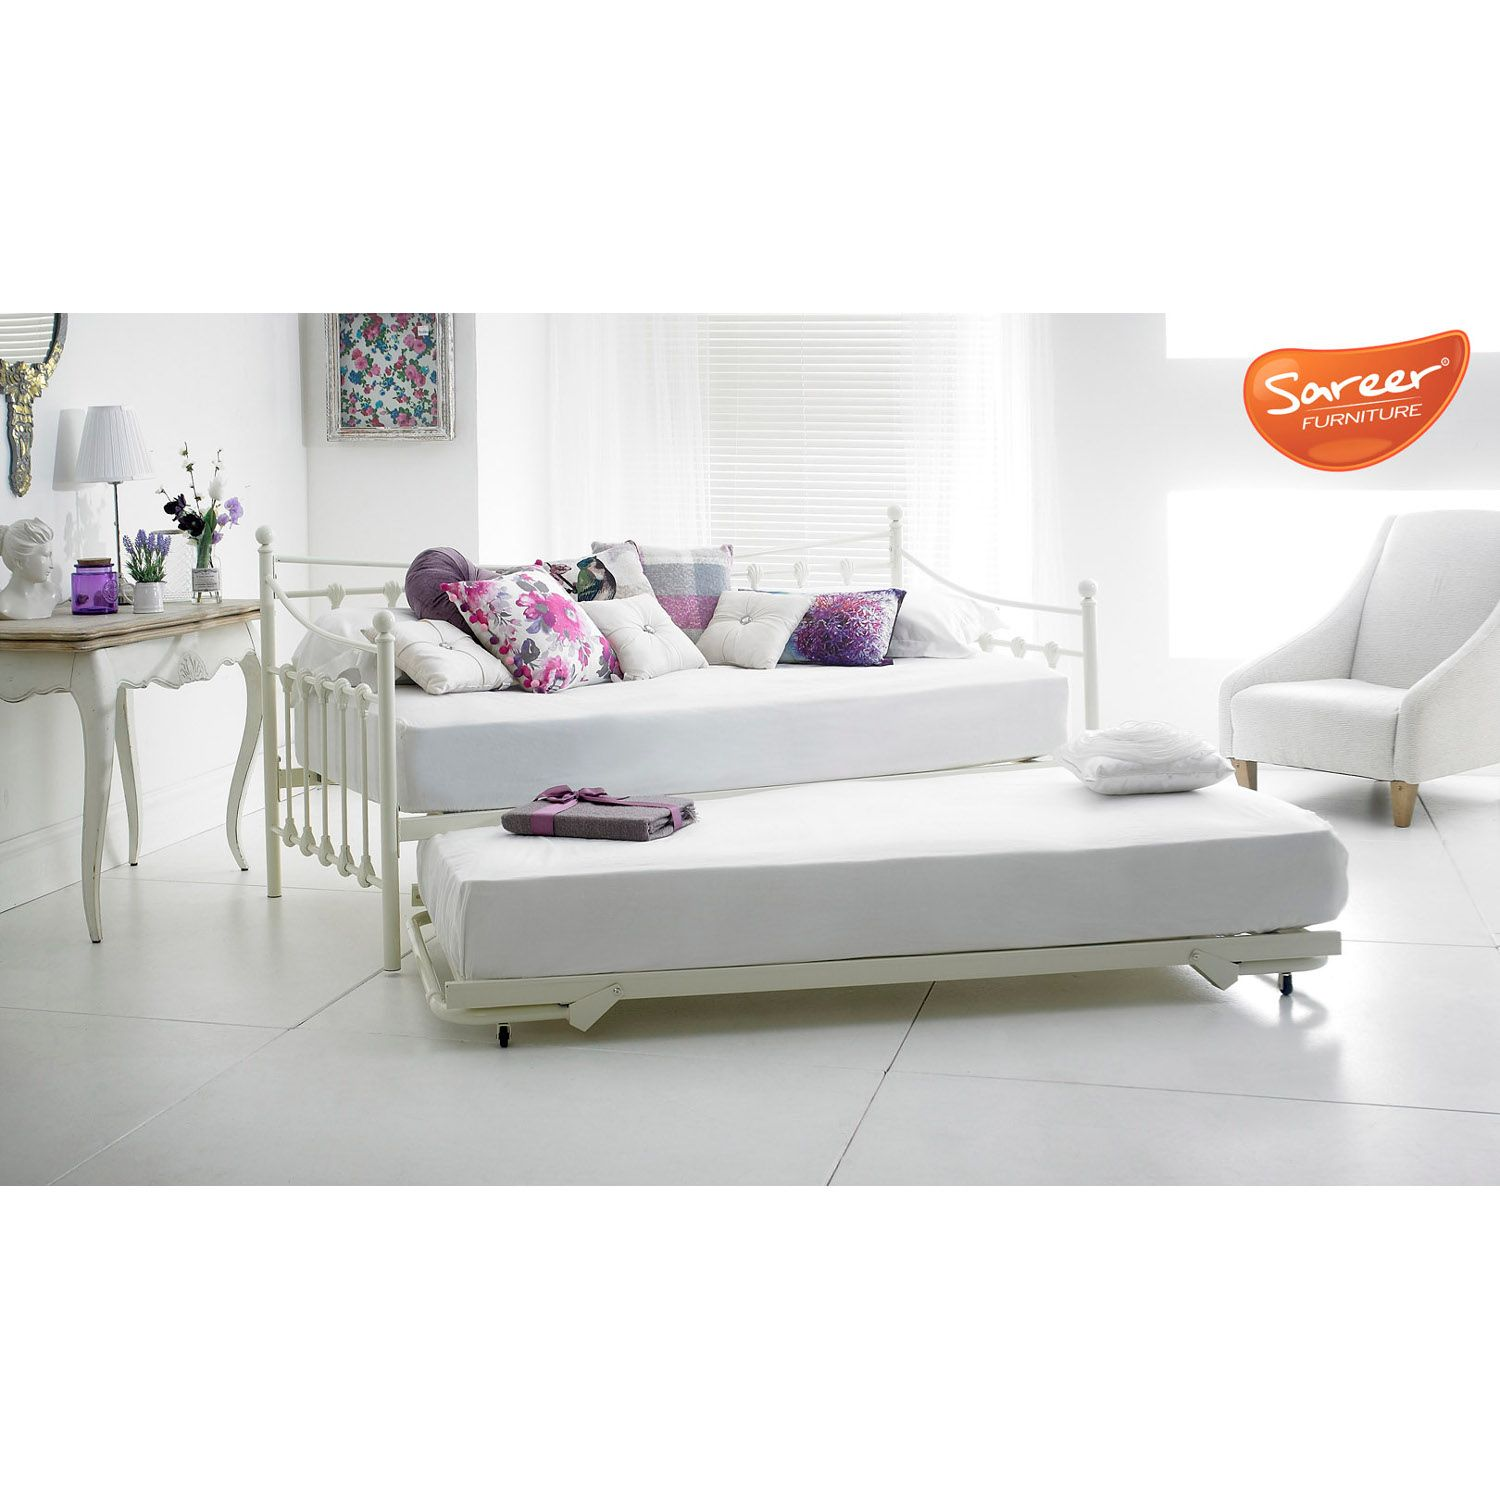 Sareer Day Bed With Trundle Next Day Select Day